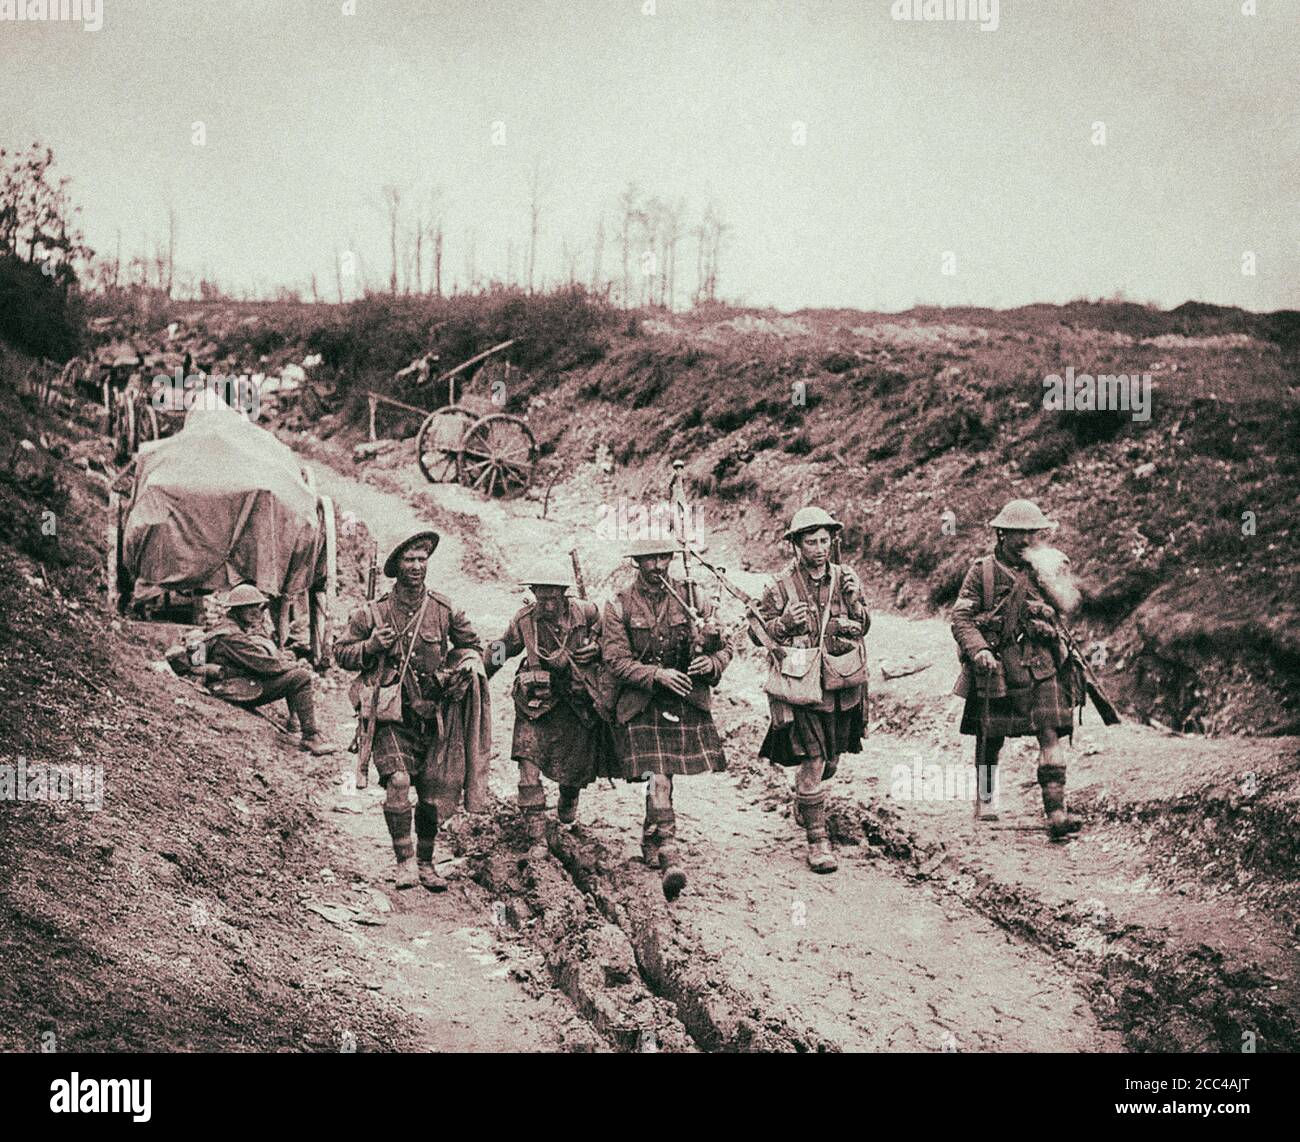 The Worl War I. Battle of the Somme. A piper of the 7th Seaforth Highlanders leads four men of the 26th Brigade back from the trenches after the attac Stock Photo